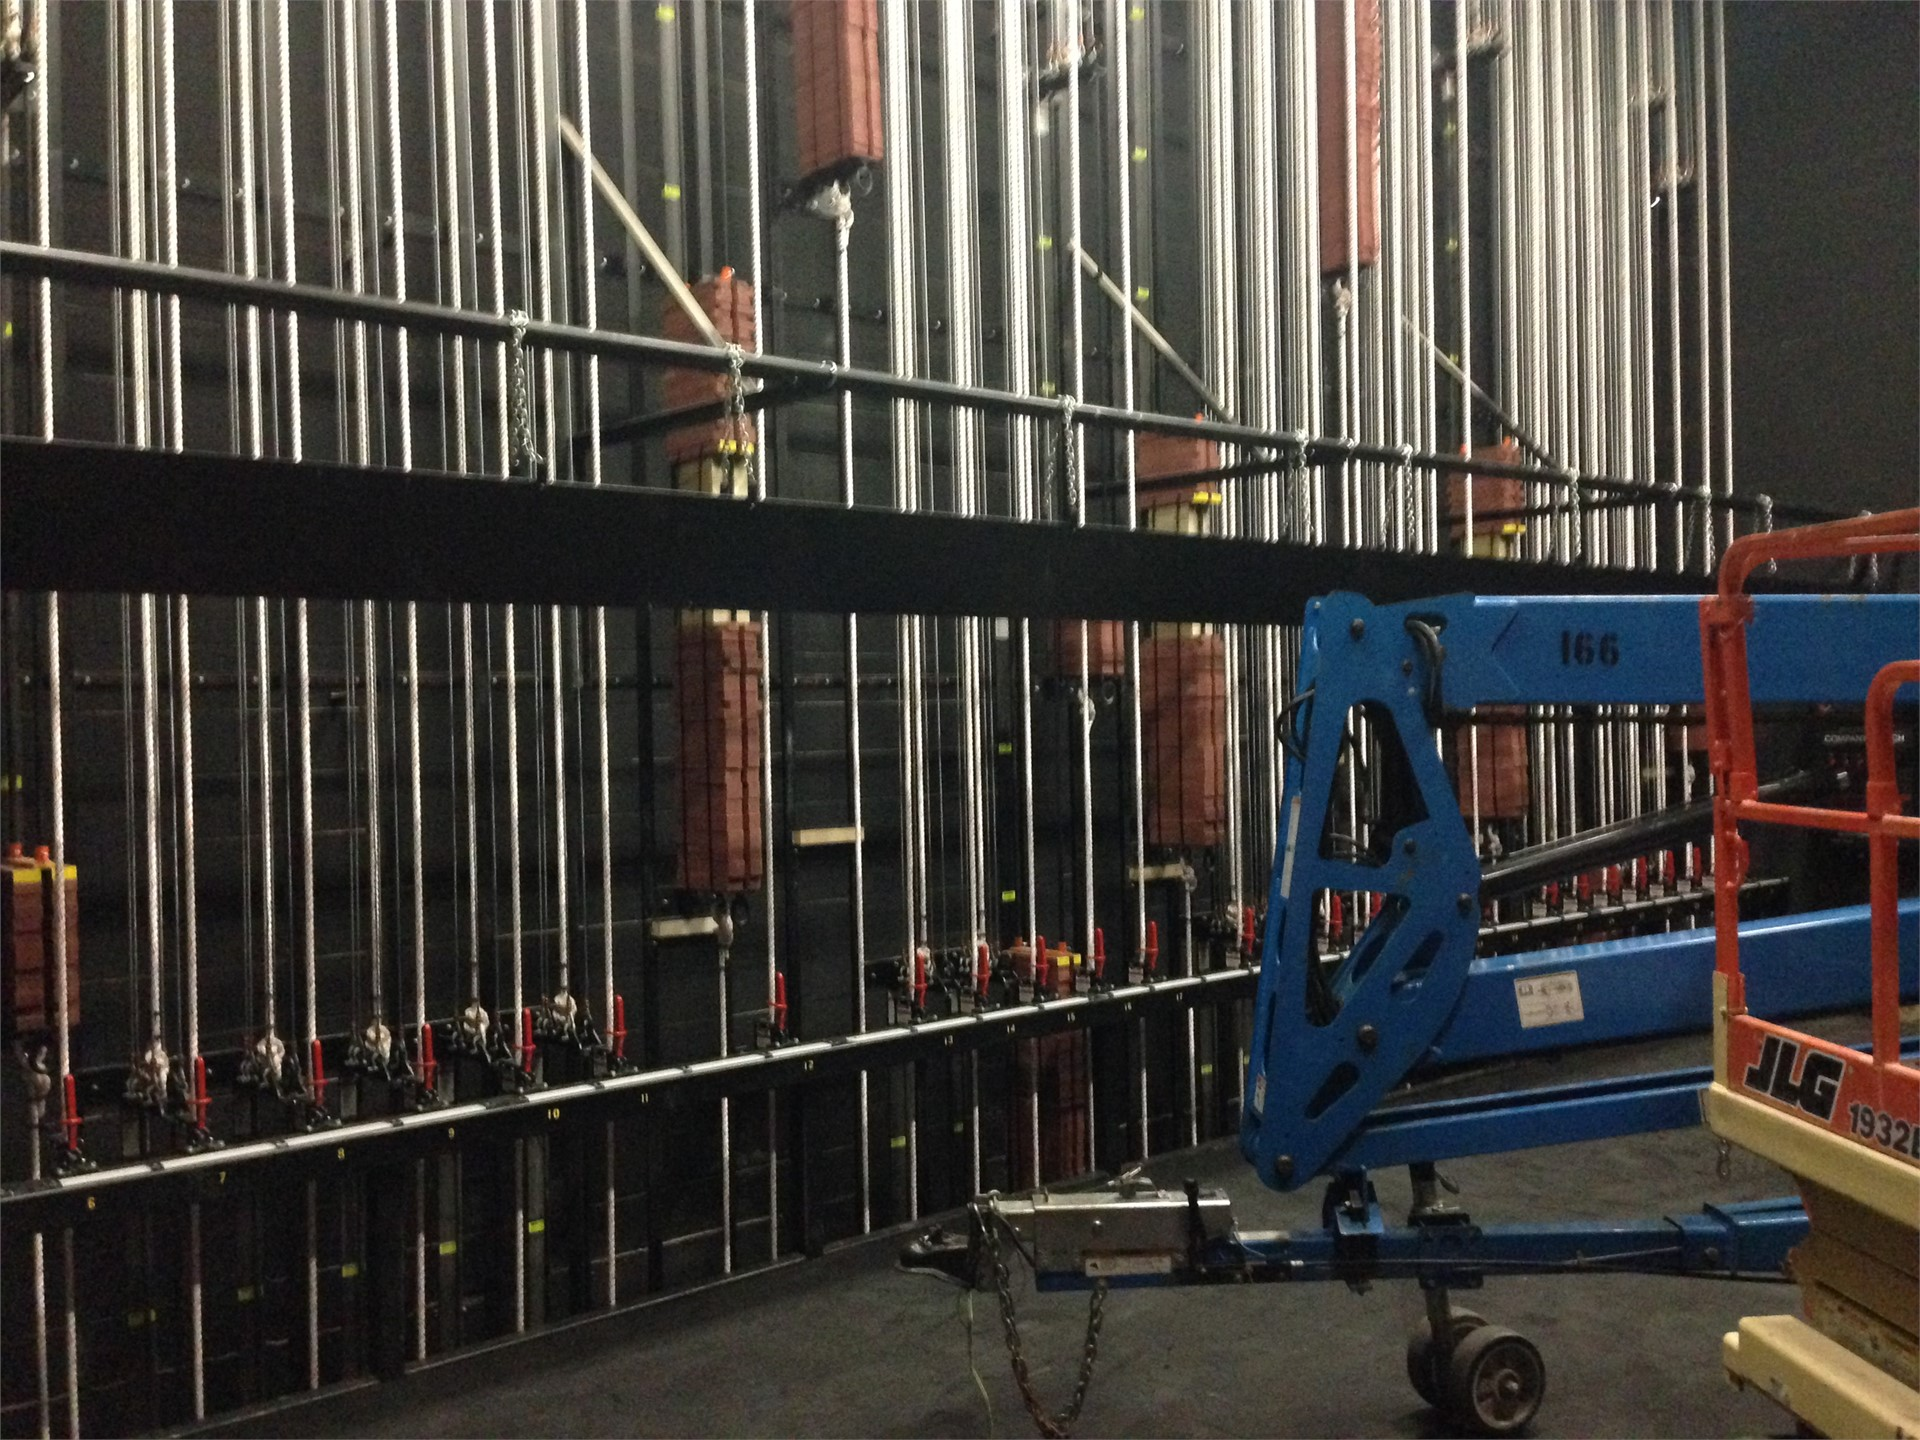 Picture of curtain weights in new auditorium